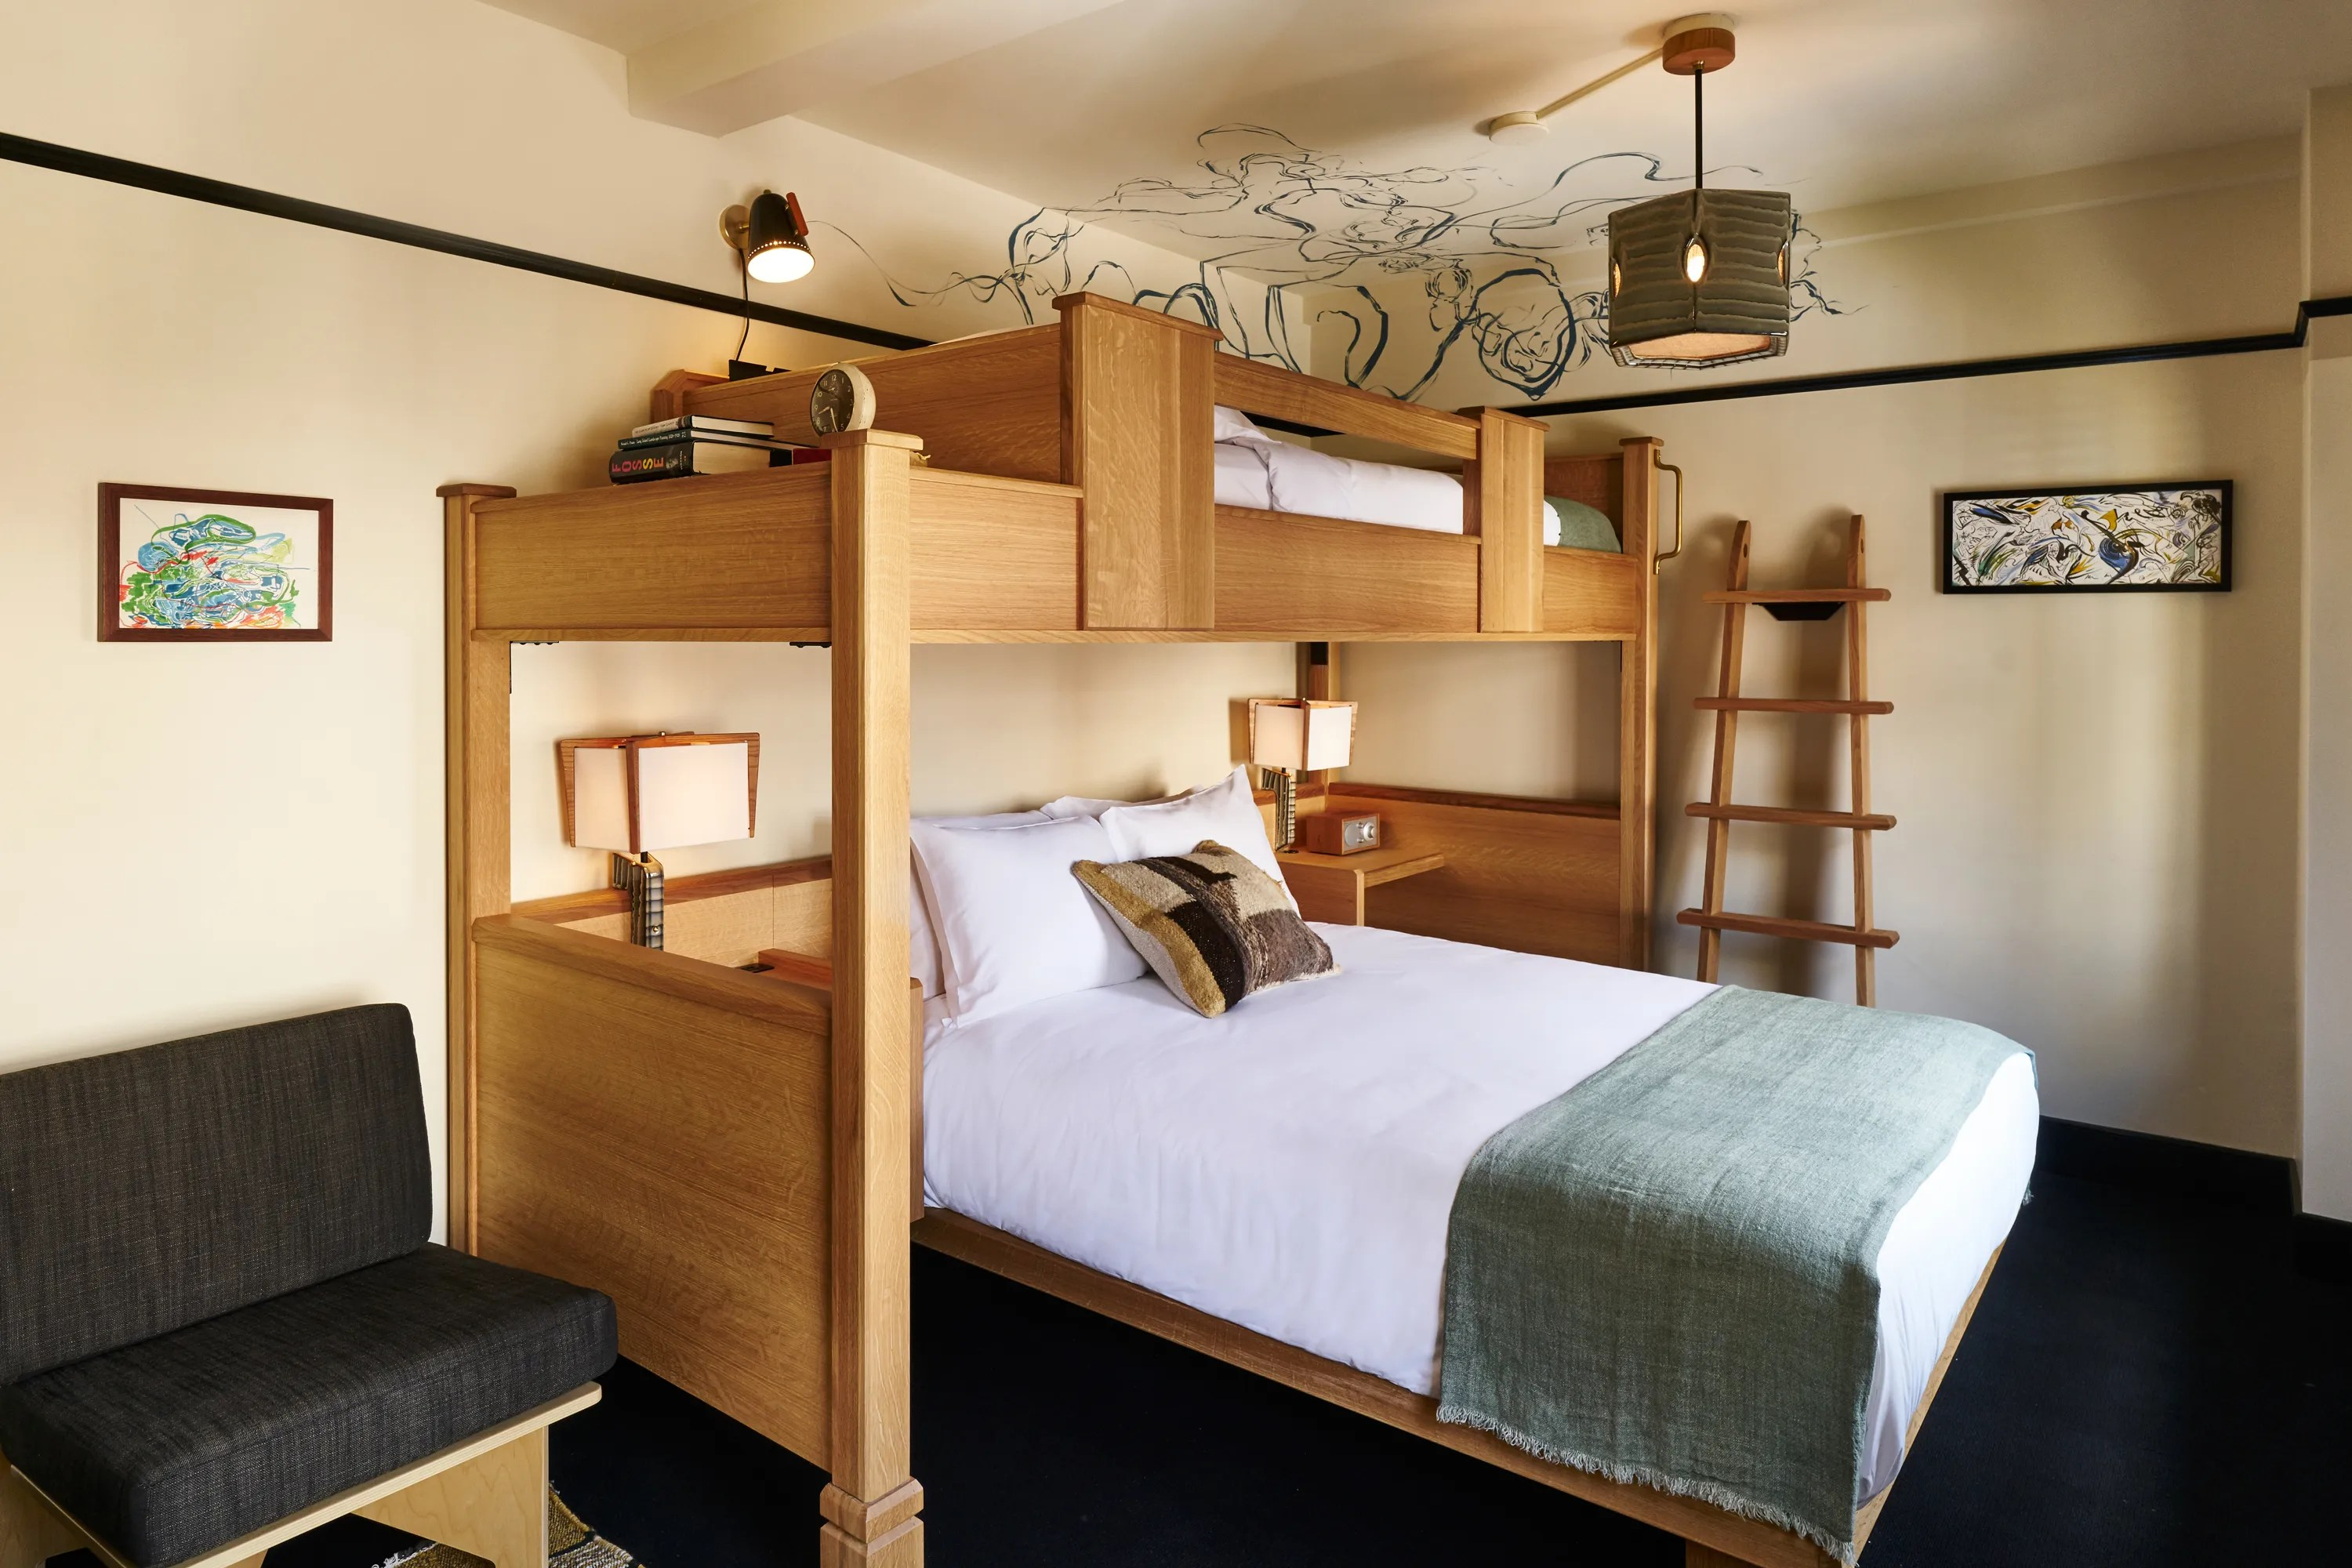 Stylish Hotels Are Bringing The Bunk Bed Back Vogue